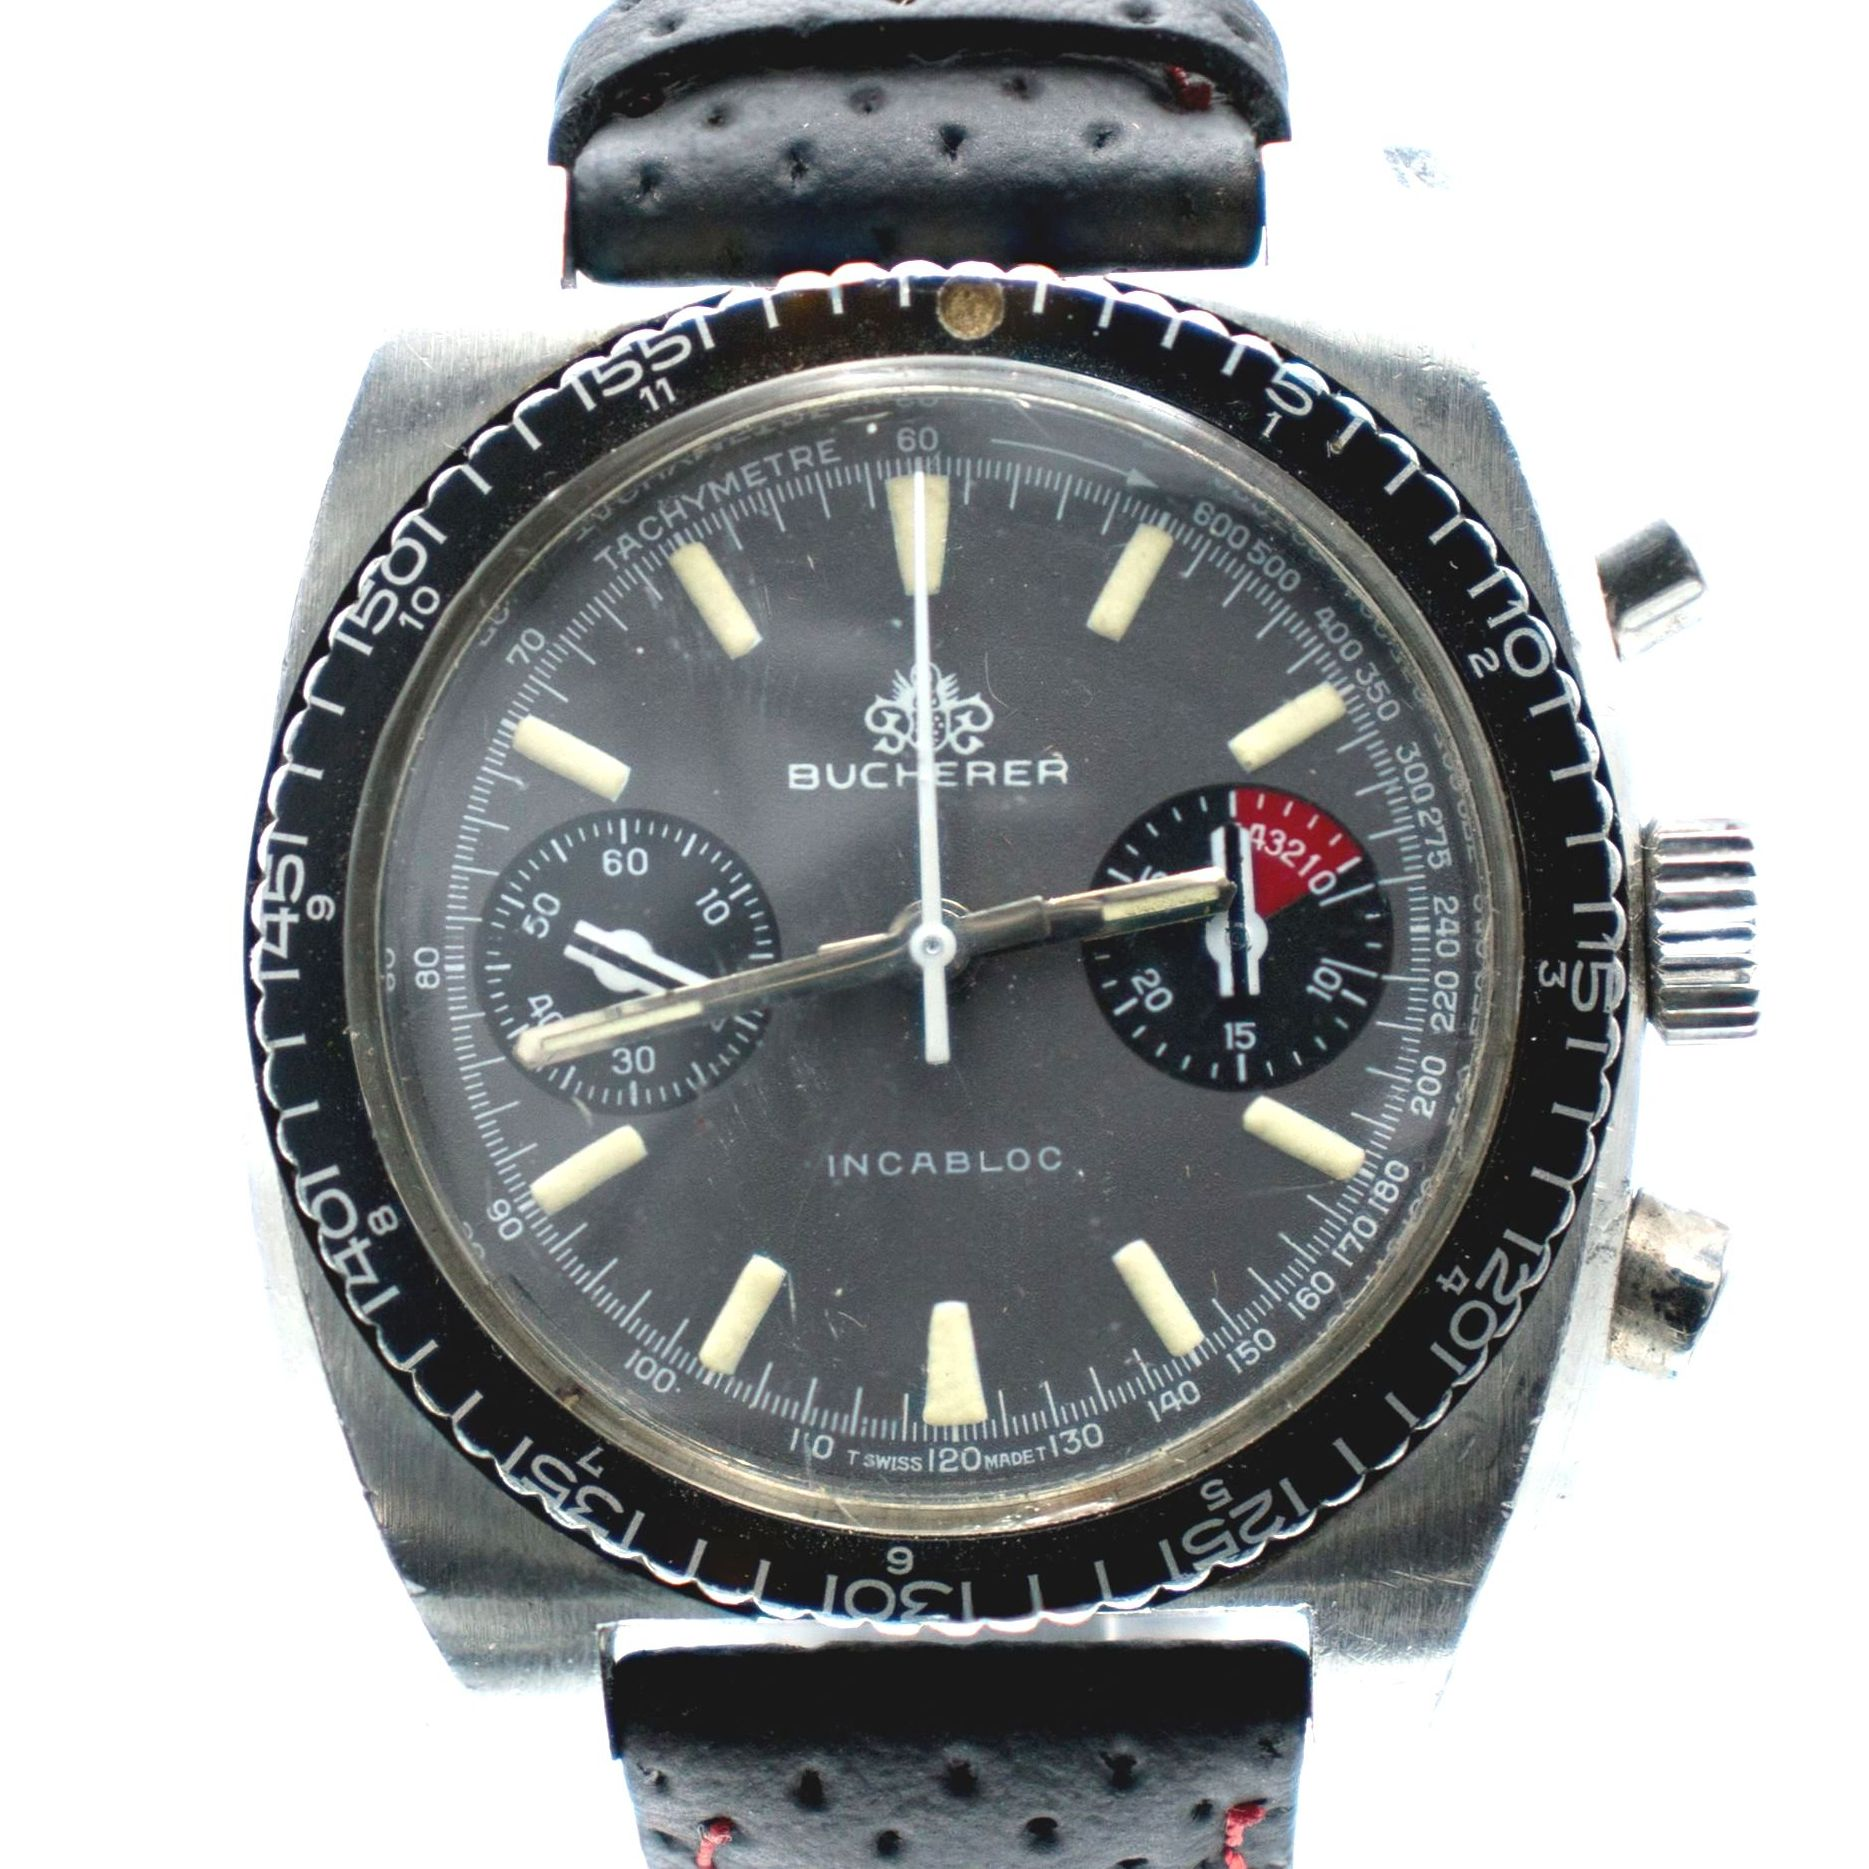 Vintage Bucherer Chronograph Diver With Valjoux 7733